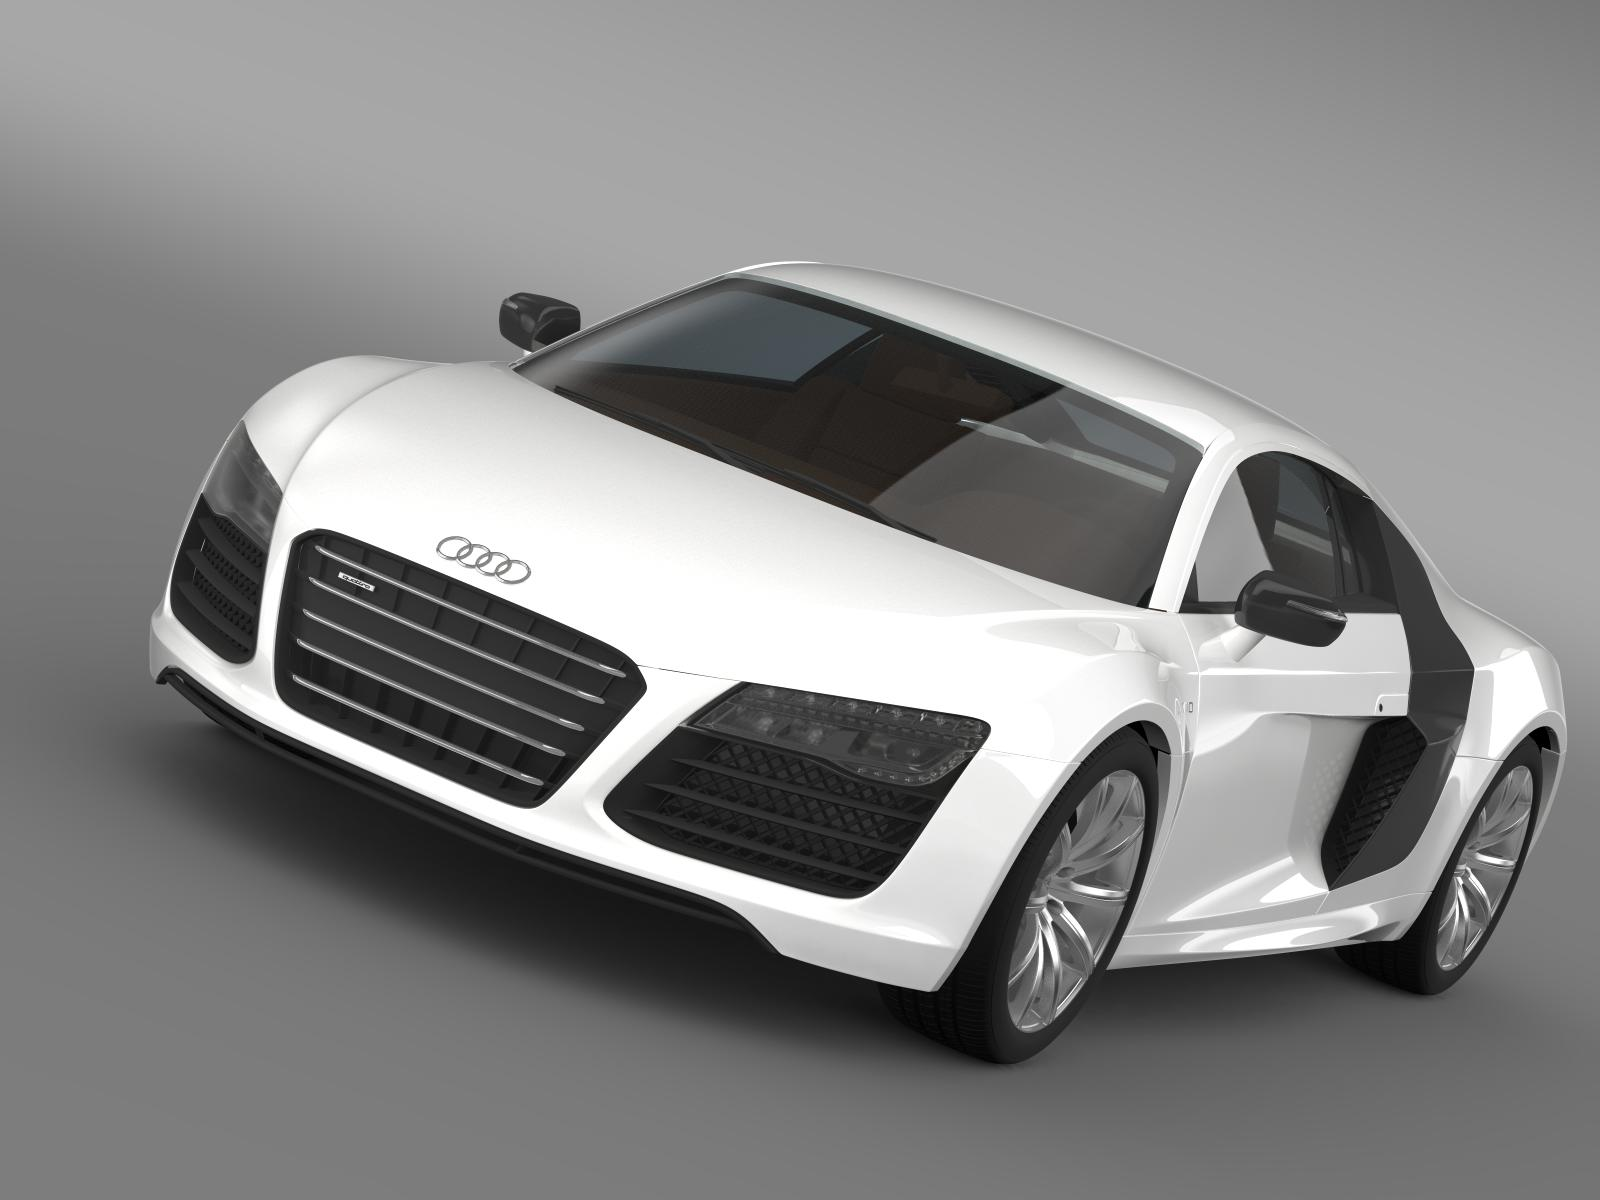 b&b audi r8 v10 plus 2013 3d model 3ds max fbx c4d lwo ma mb hrc xsi obj 164869